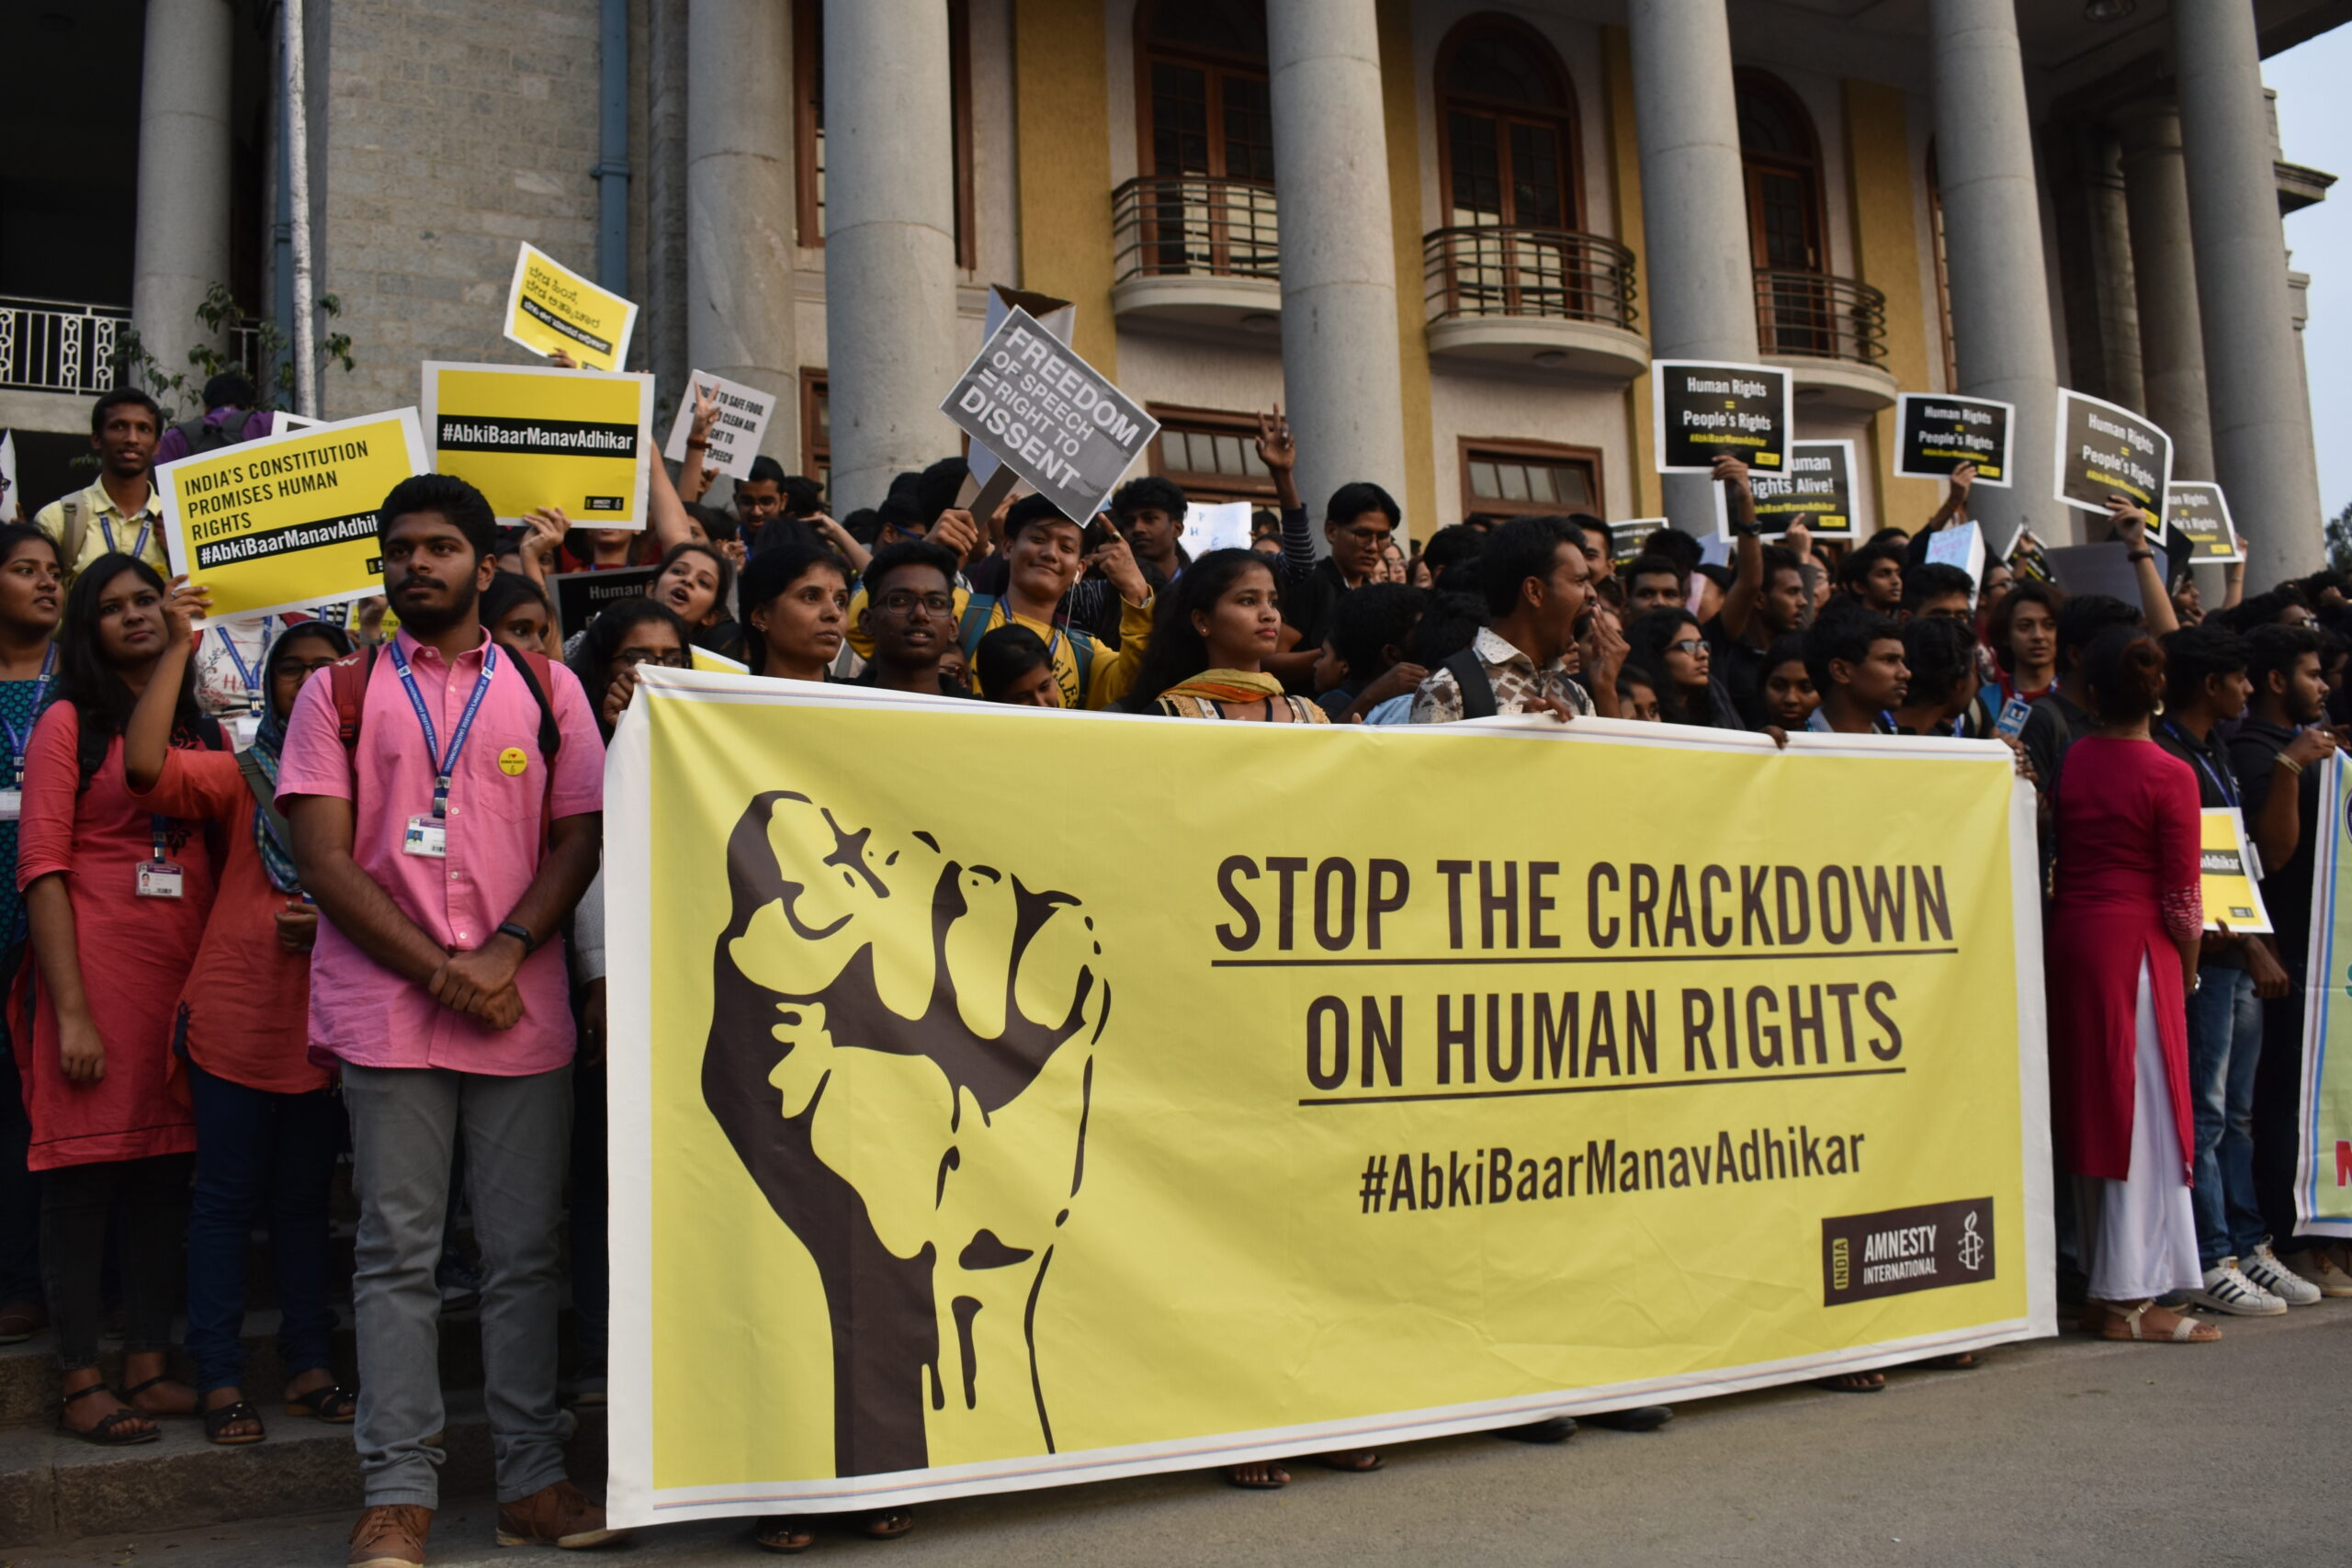 Stop silencing dissent in India: EU leaders must tell Prime Minister Modi to protect human rights amid the COVID-19 crisis.